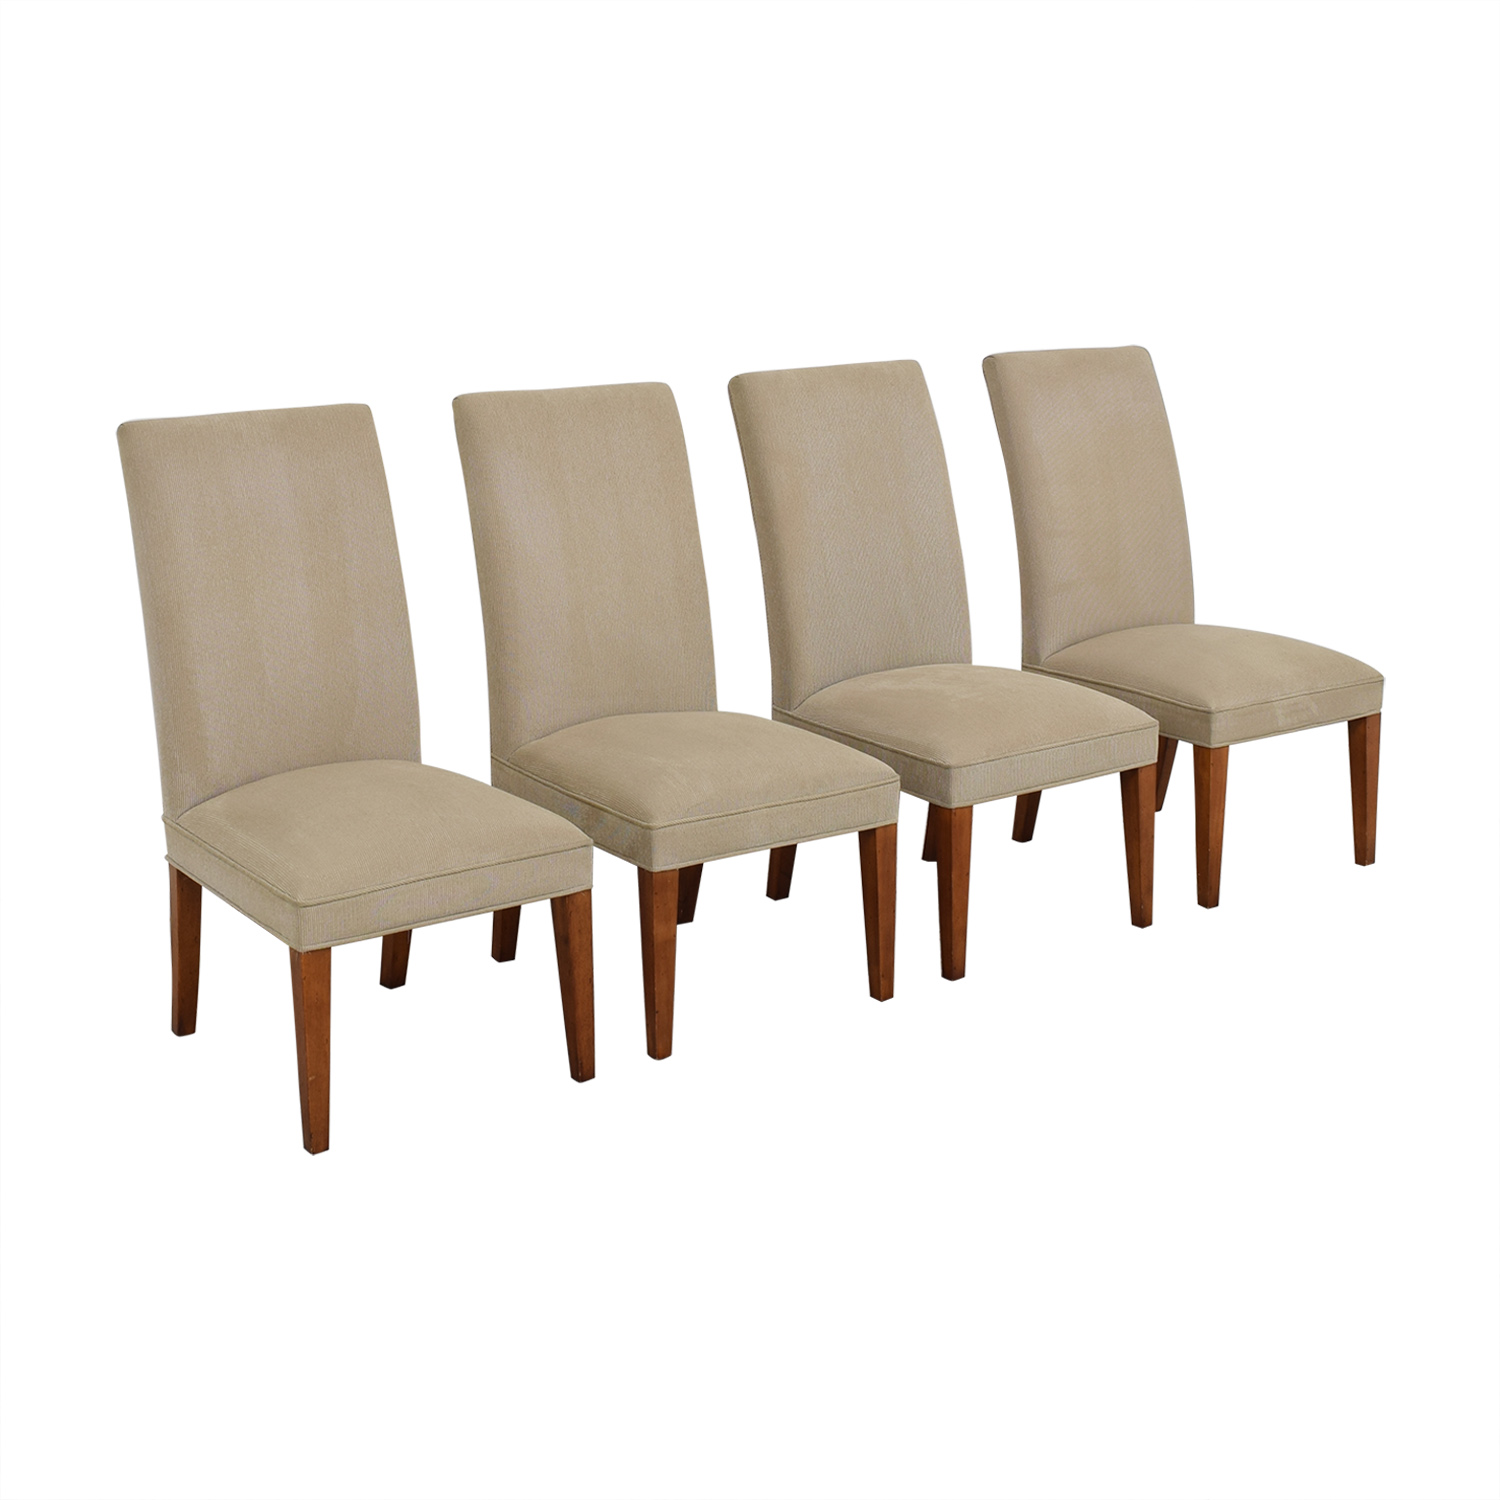 Restoration Hardware Restoration Hardware Hudson Parsons Chairs coupon